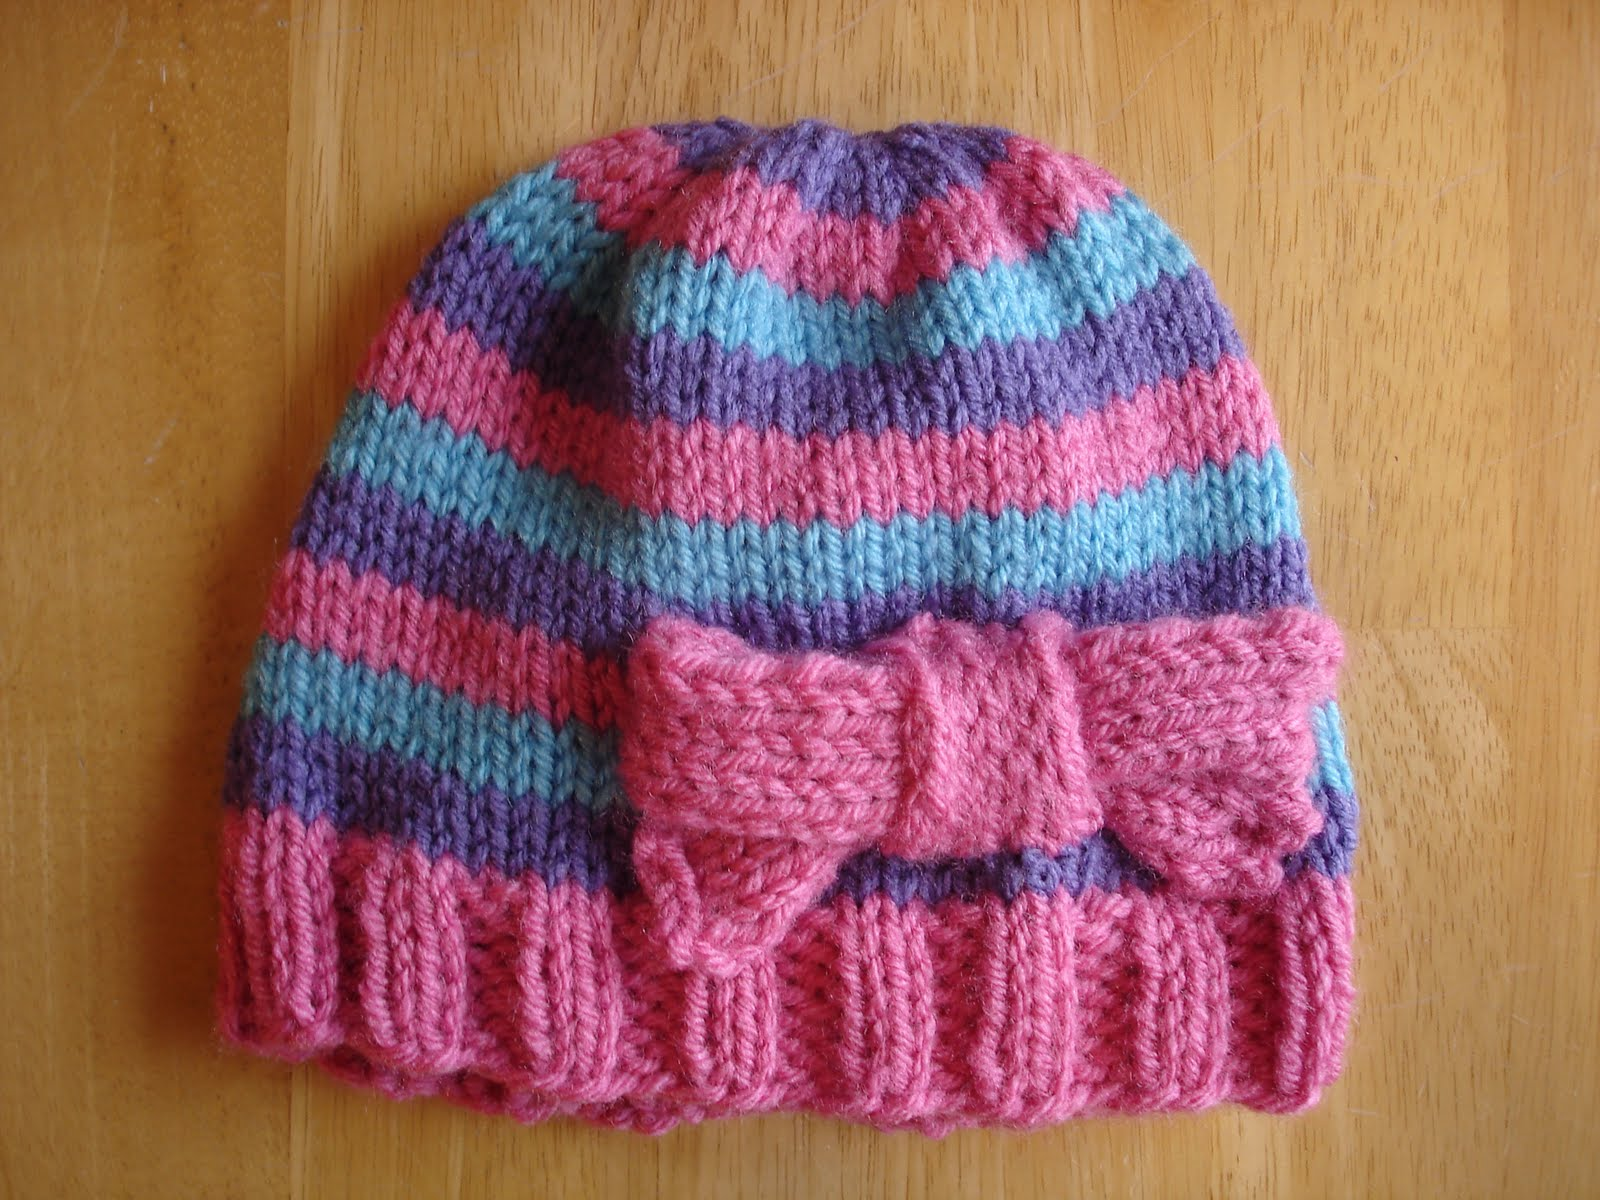 Kids Knitting Patterns Free : Fiber Flux: Free Knitting Pattern...Super Pink Toddler Hat!